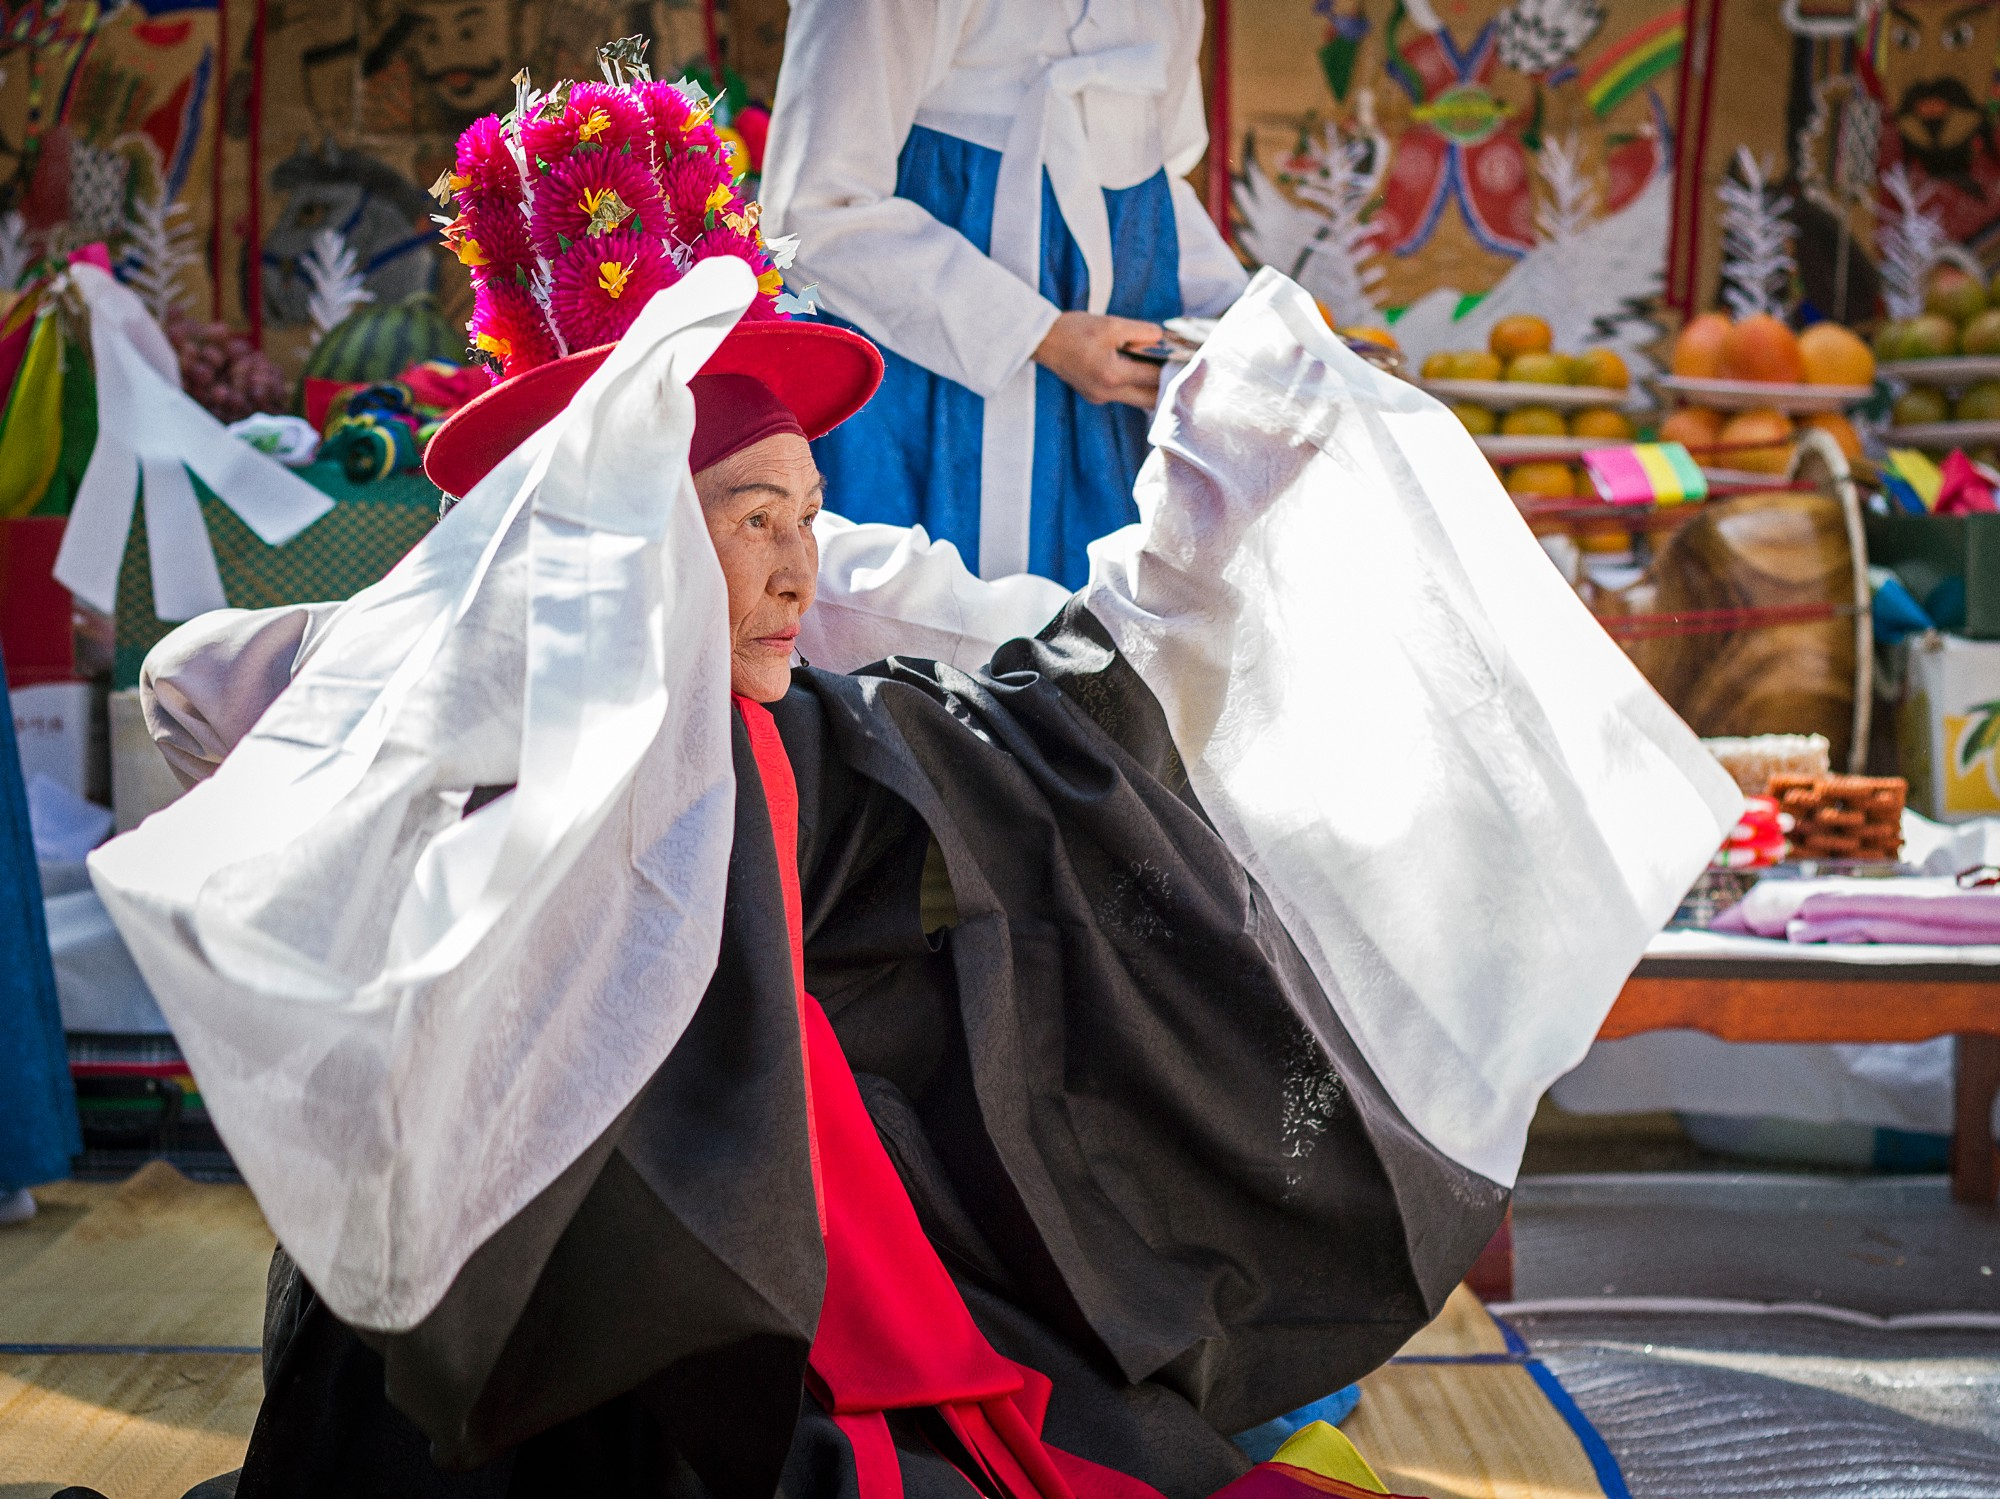 """Manshin Kim Keum-Hwa performs at her shrine in Ganghwa Island, South Korea. Kim Keum-Hwa is a famous shaman, designated by the South Korean government as an """"Intangible Cultural Treasure."""" This three-day ritual was held to celebrate her 70th anniversary as a shaman."""